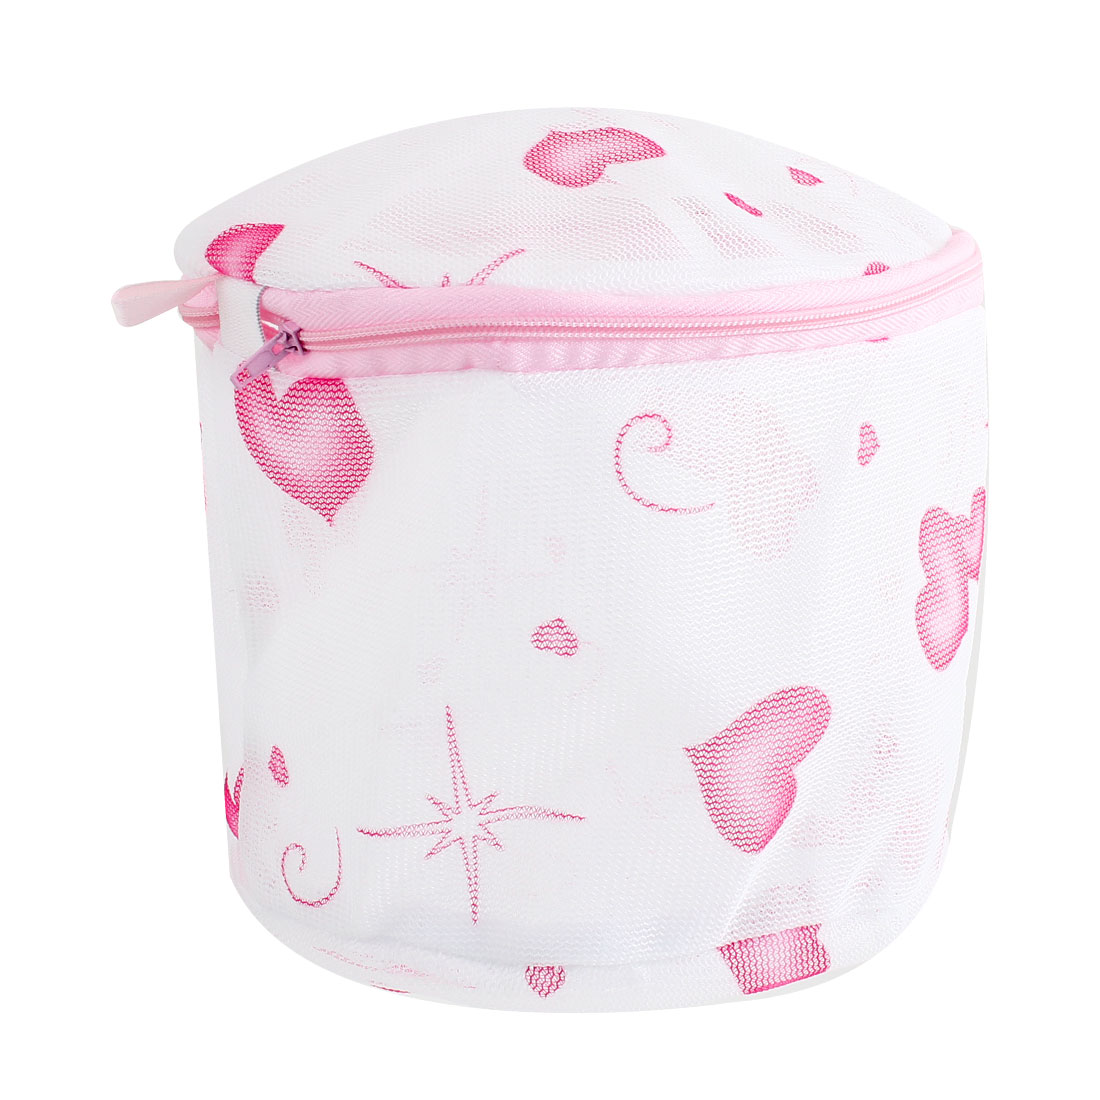 Zipper Closure Heart Pattern Foldable Underwear Wash Washing Bag White Pink